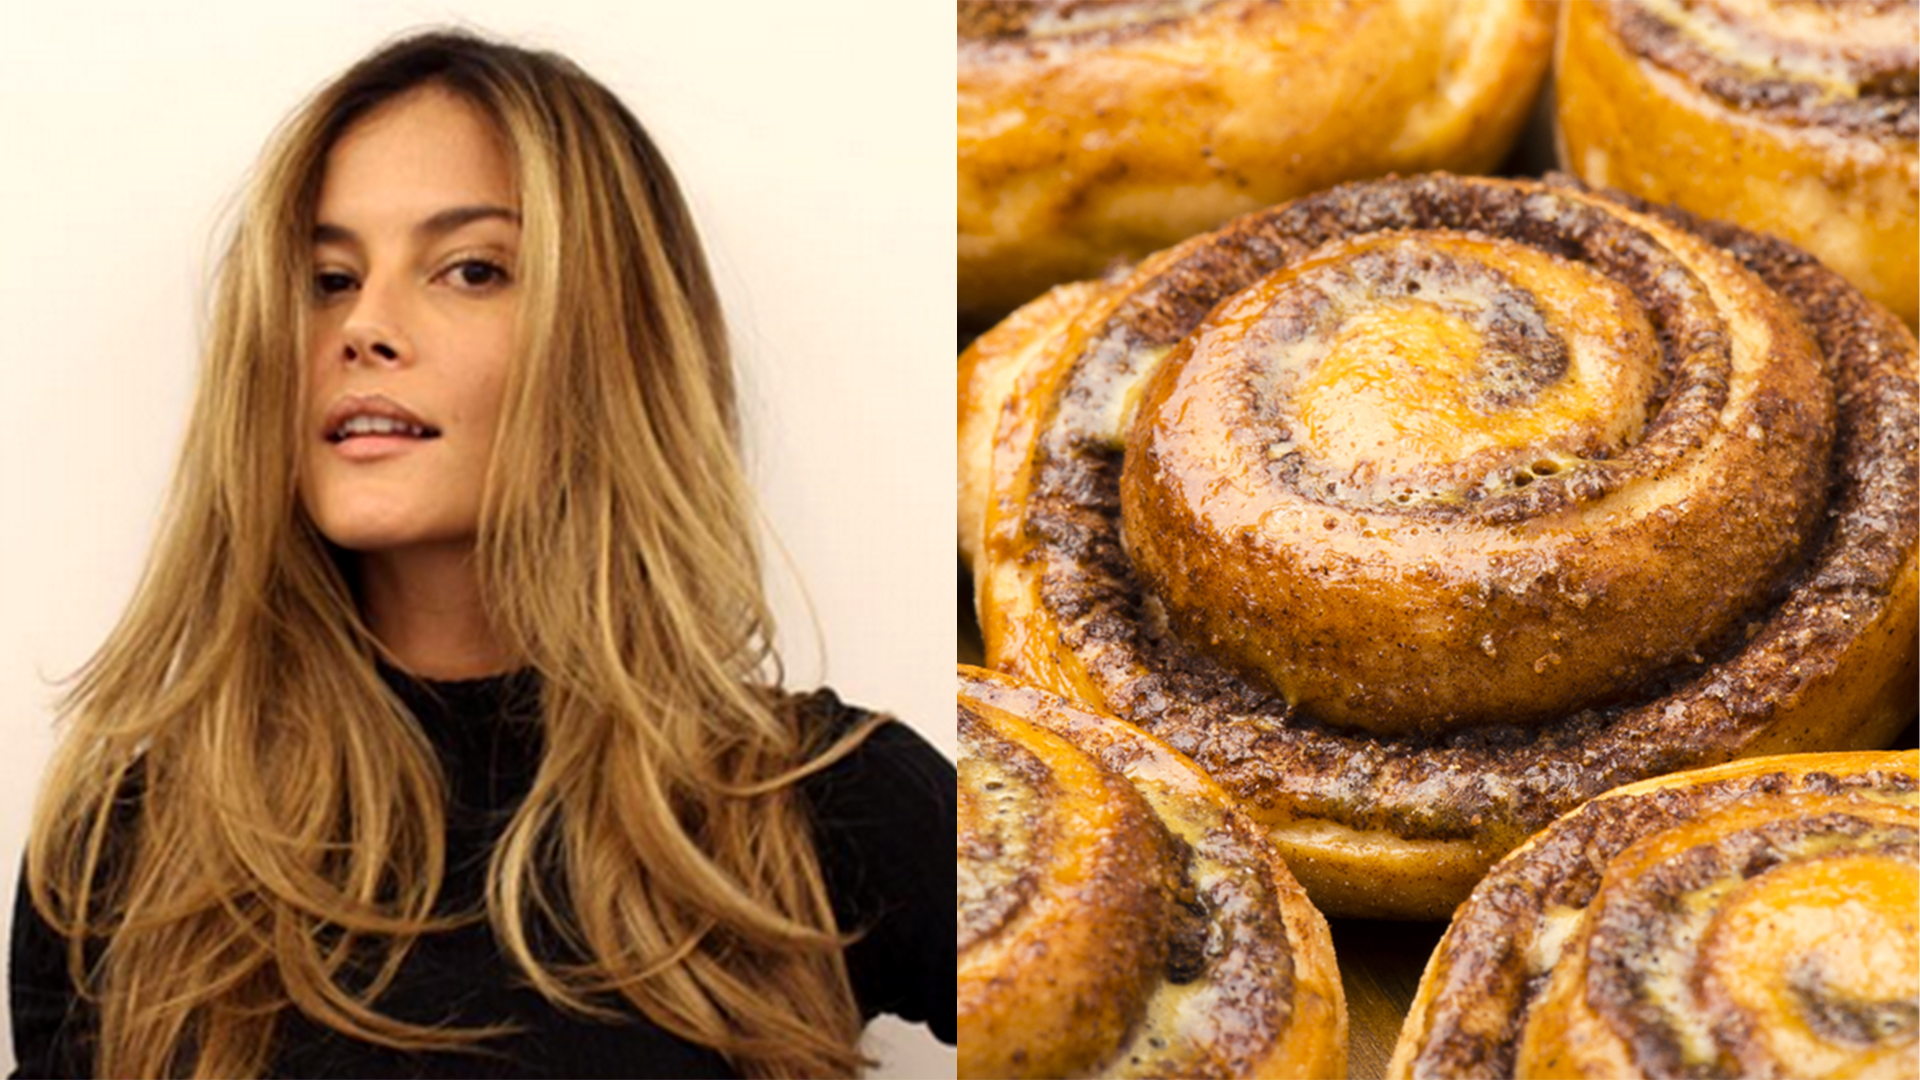 Cinnamon Swirl Hair Is Latest Trend Spicing Up Womens